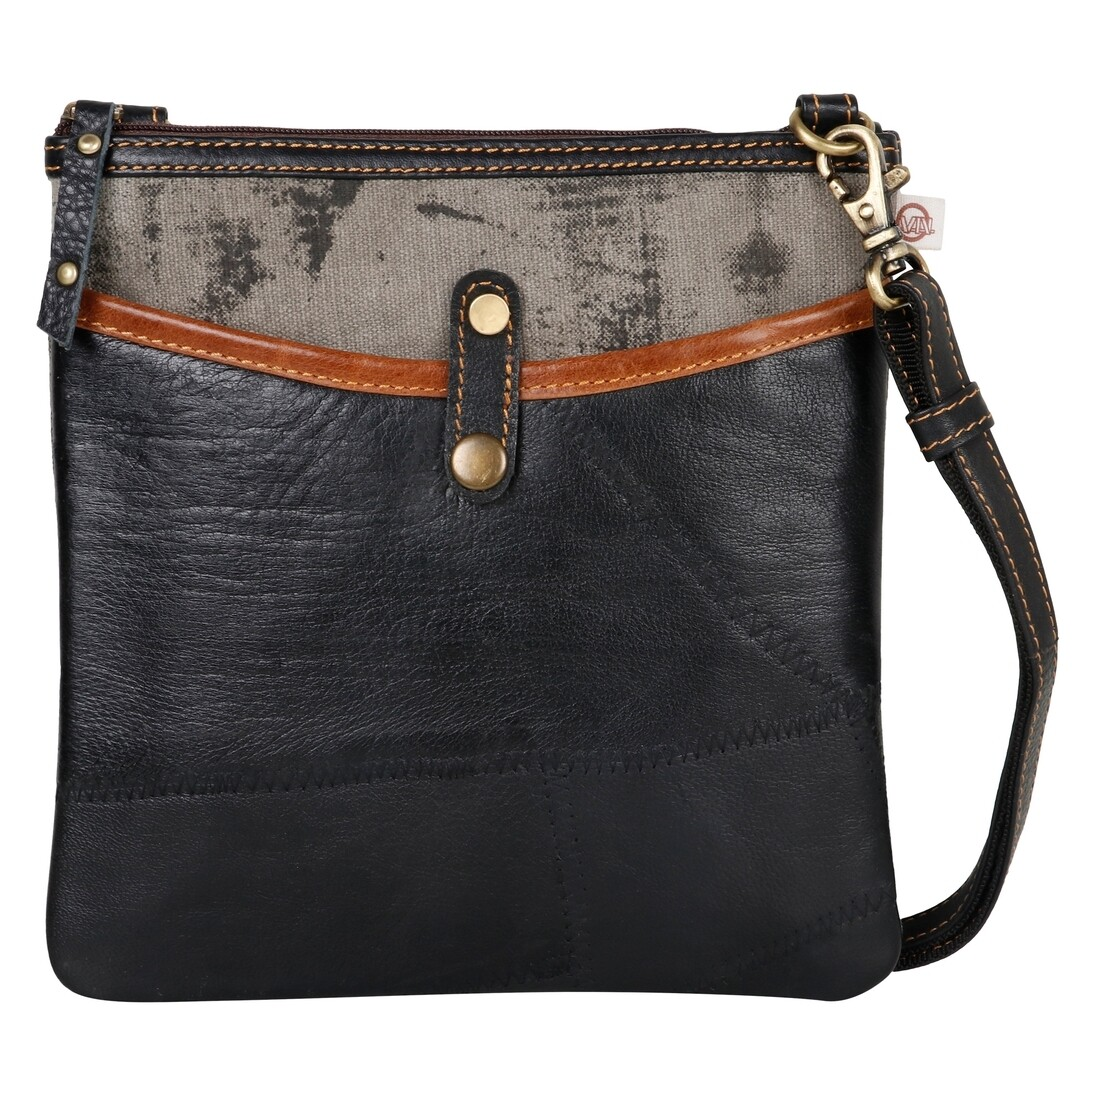 600-VG1014-P15 Mini Pat Grey - Upcycled Genuine Leather r65